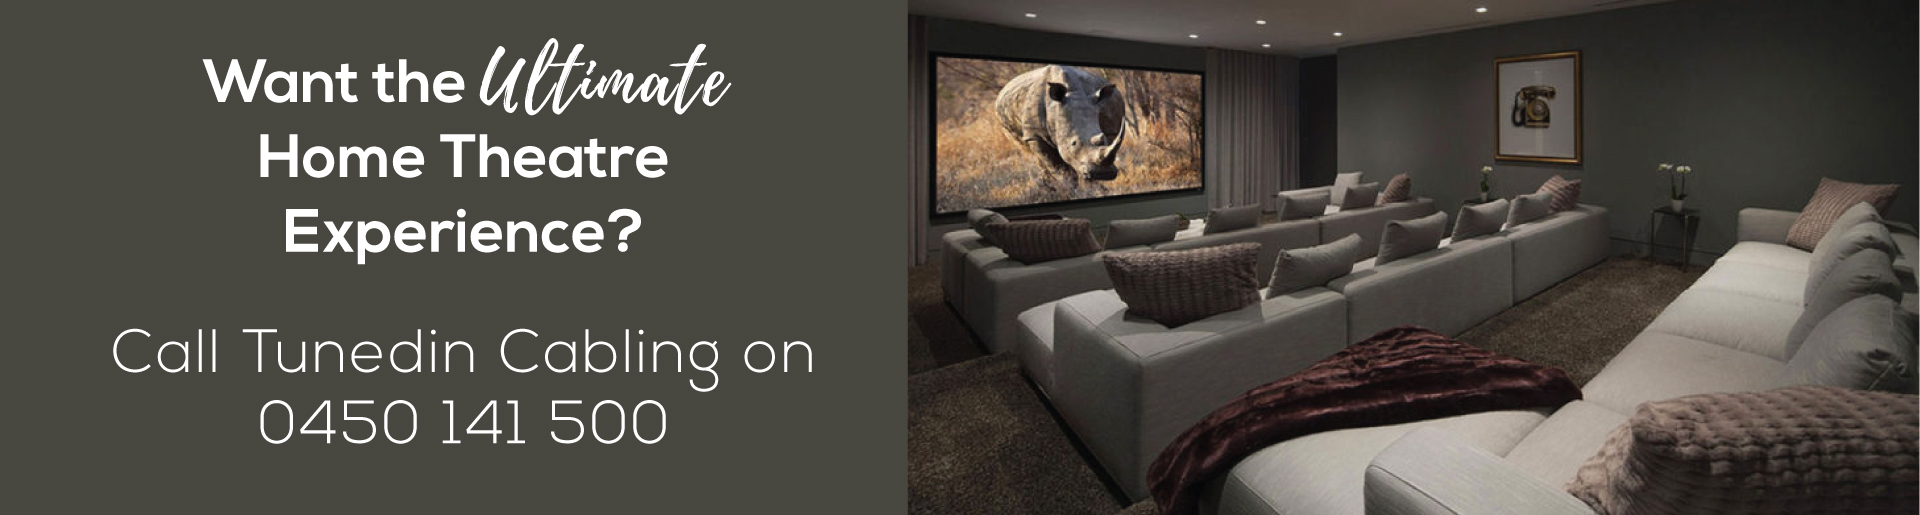 ultimate-home-theatre-experience